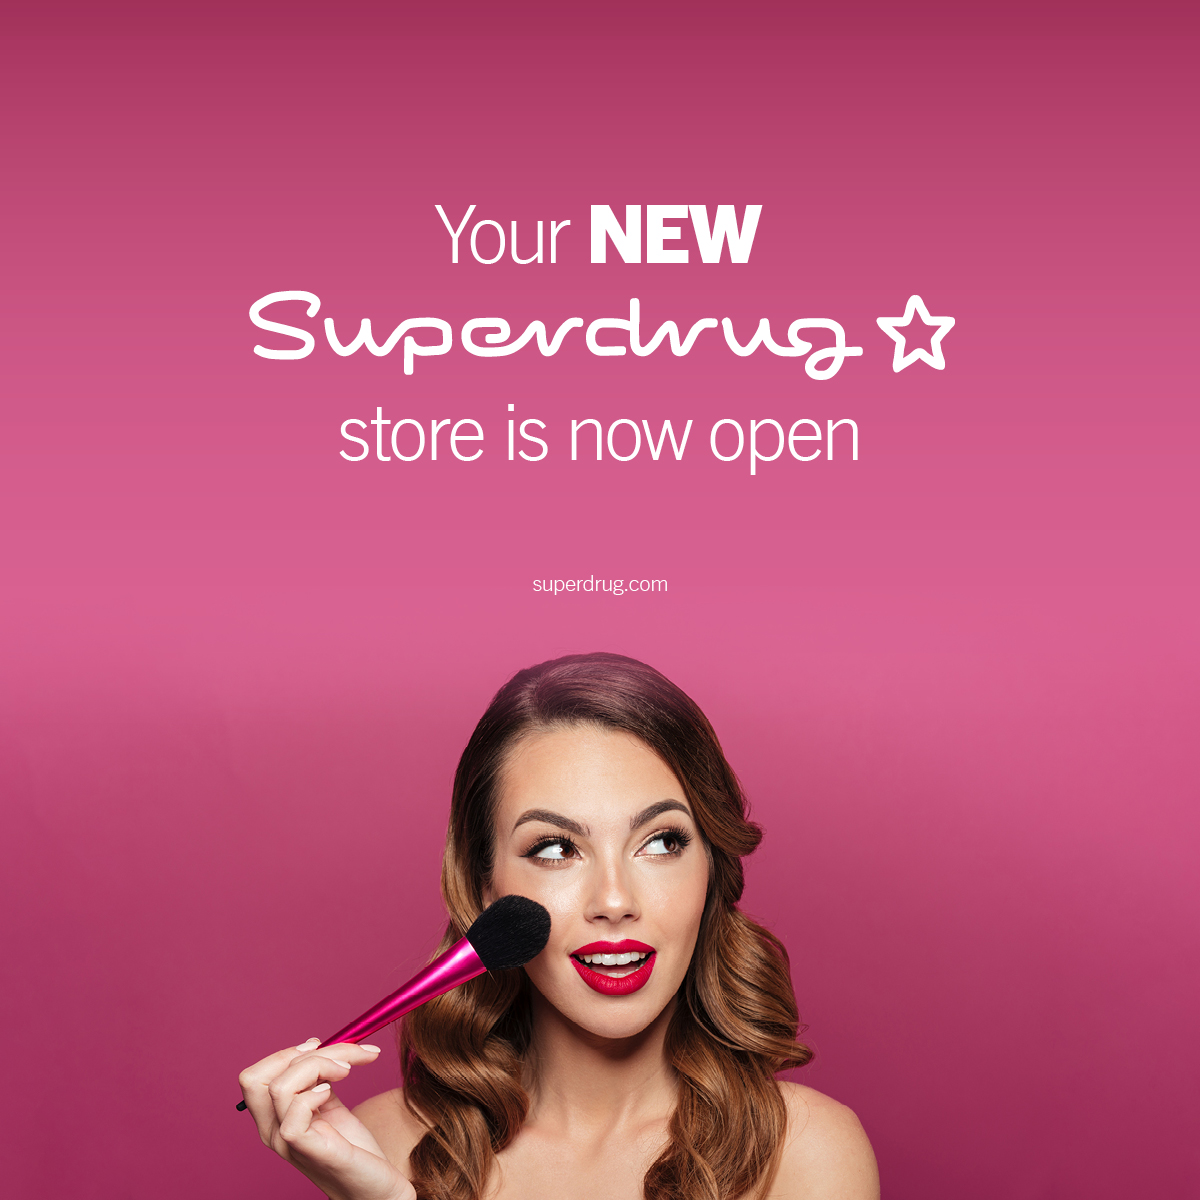 Your new Superdrug store is now open! Event Image